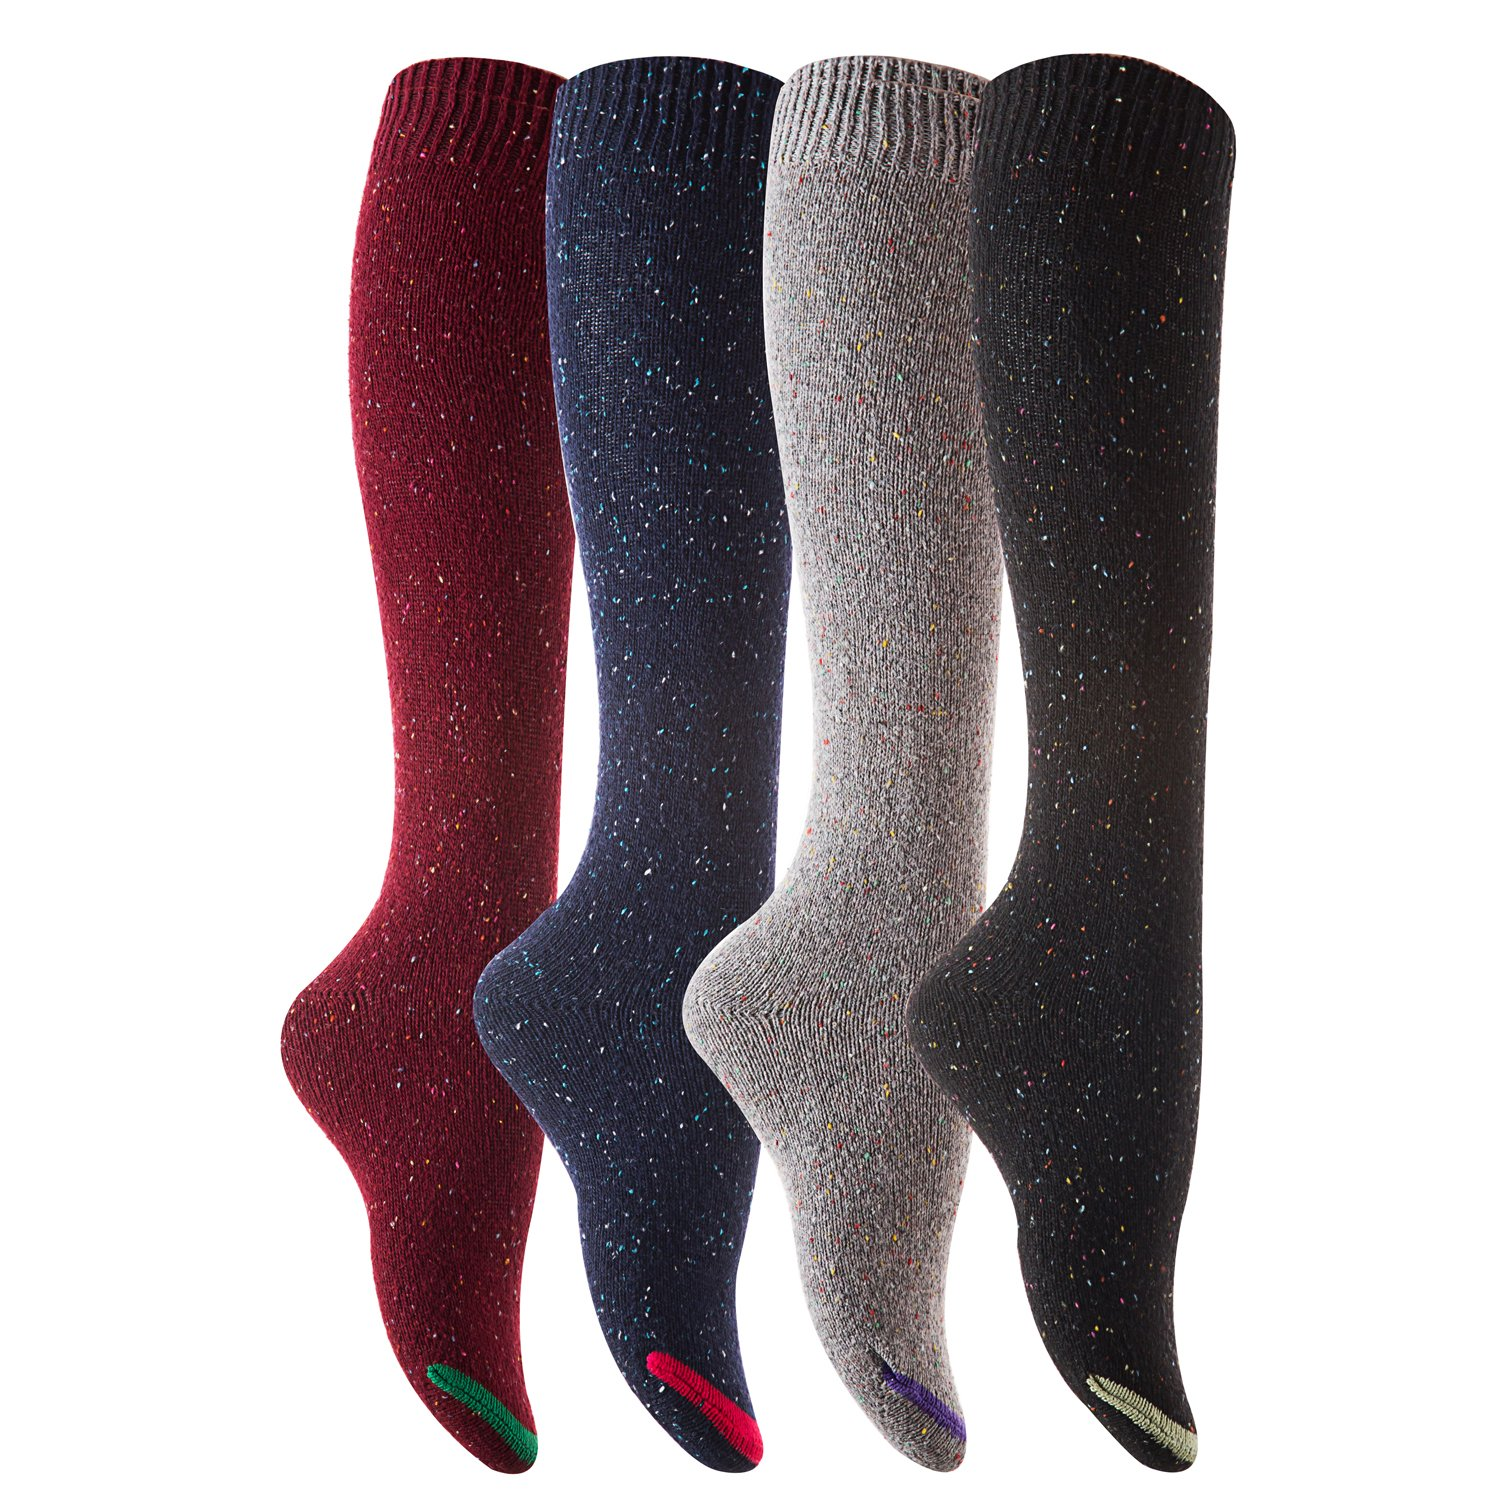 AATMart Womens 4 Pairs Pack Cozy Knee High Cotton Boot Socks Size 6-9 M8212